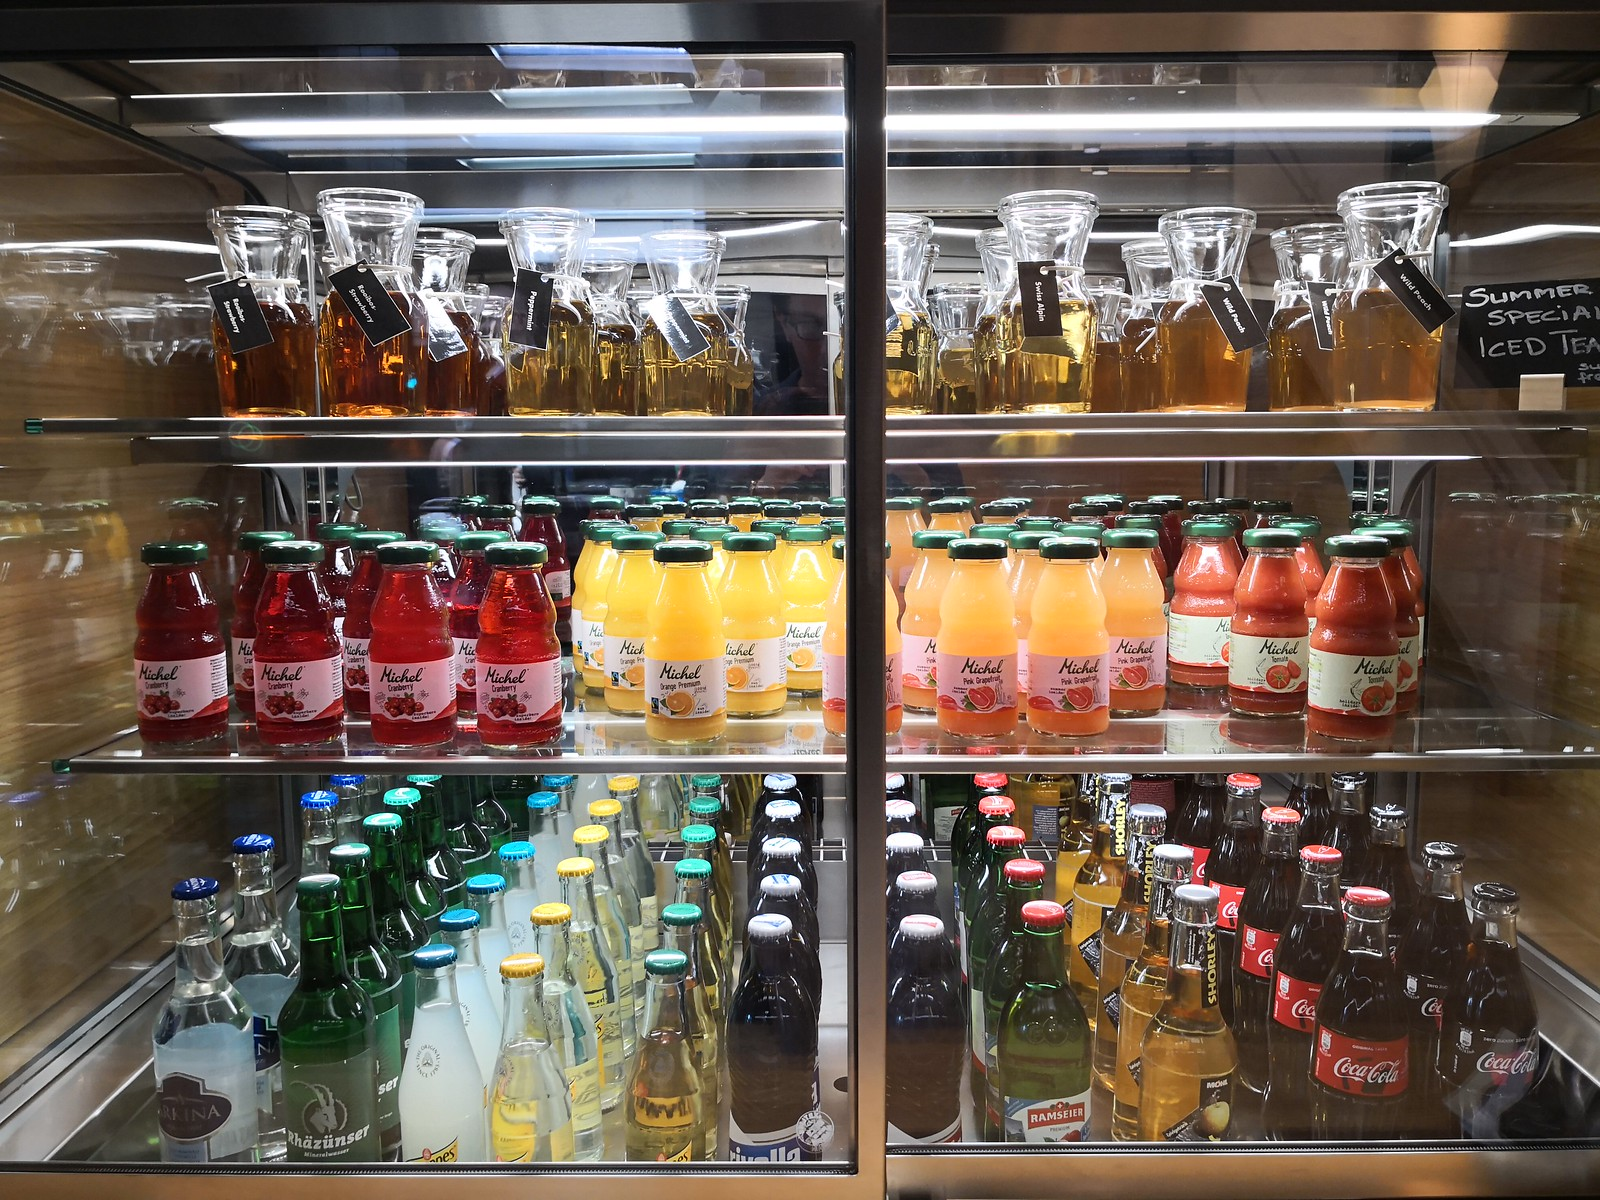 Soft drinks and juices